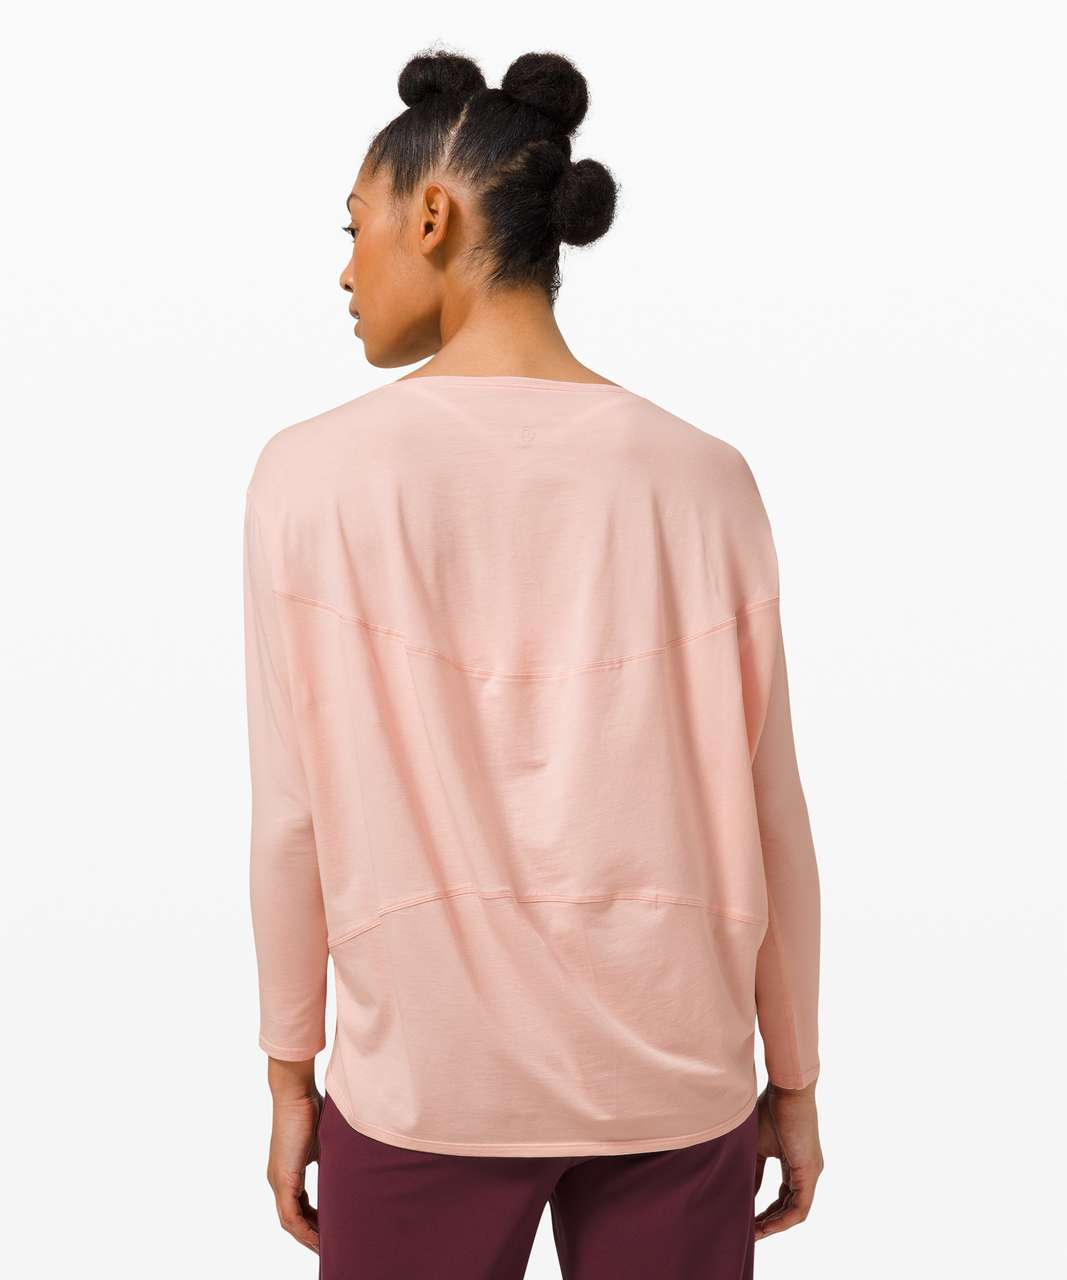 Lululemon Back In Action Long Sleeve - Pink Mist